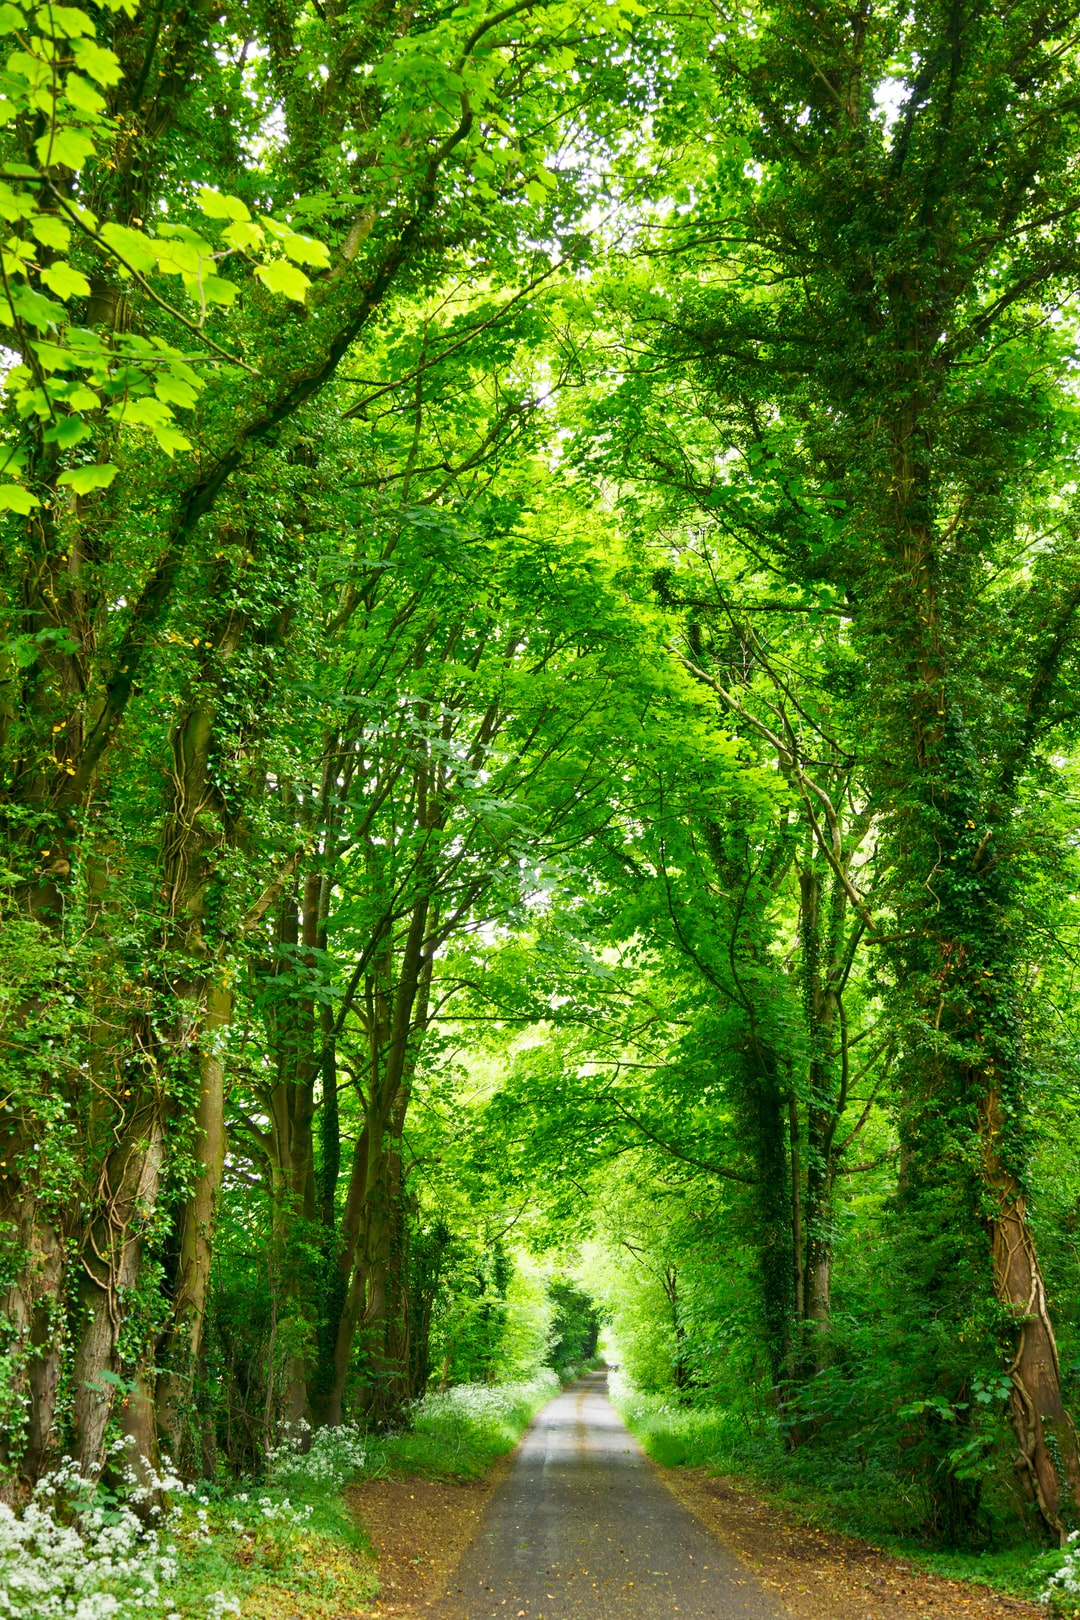 Tree-lined alley